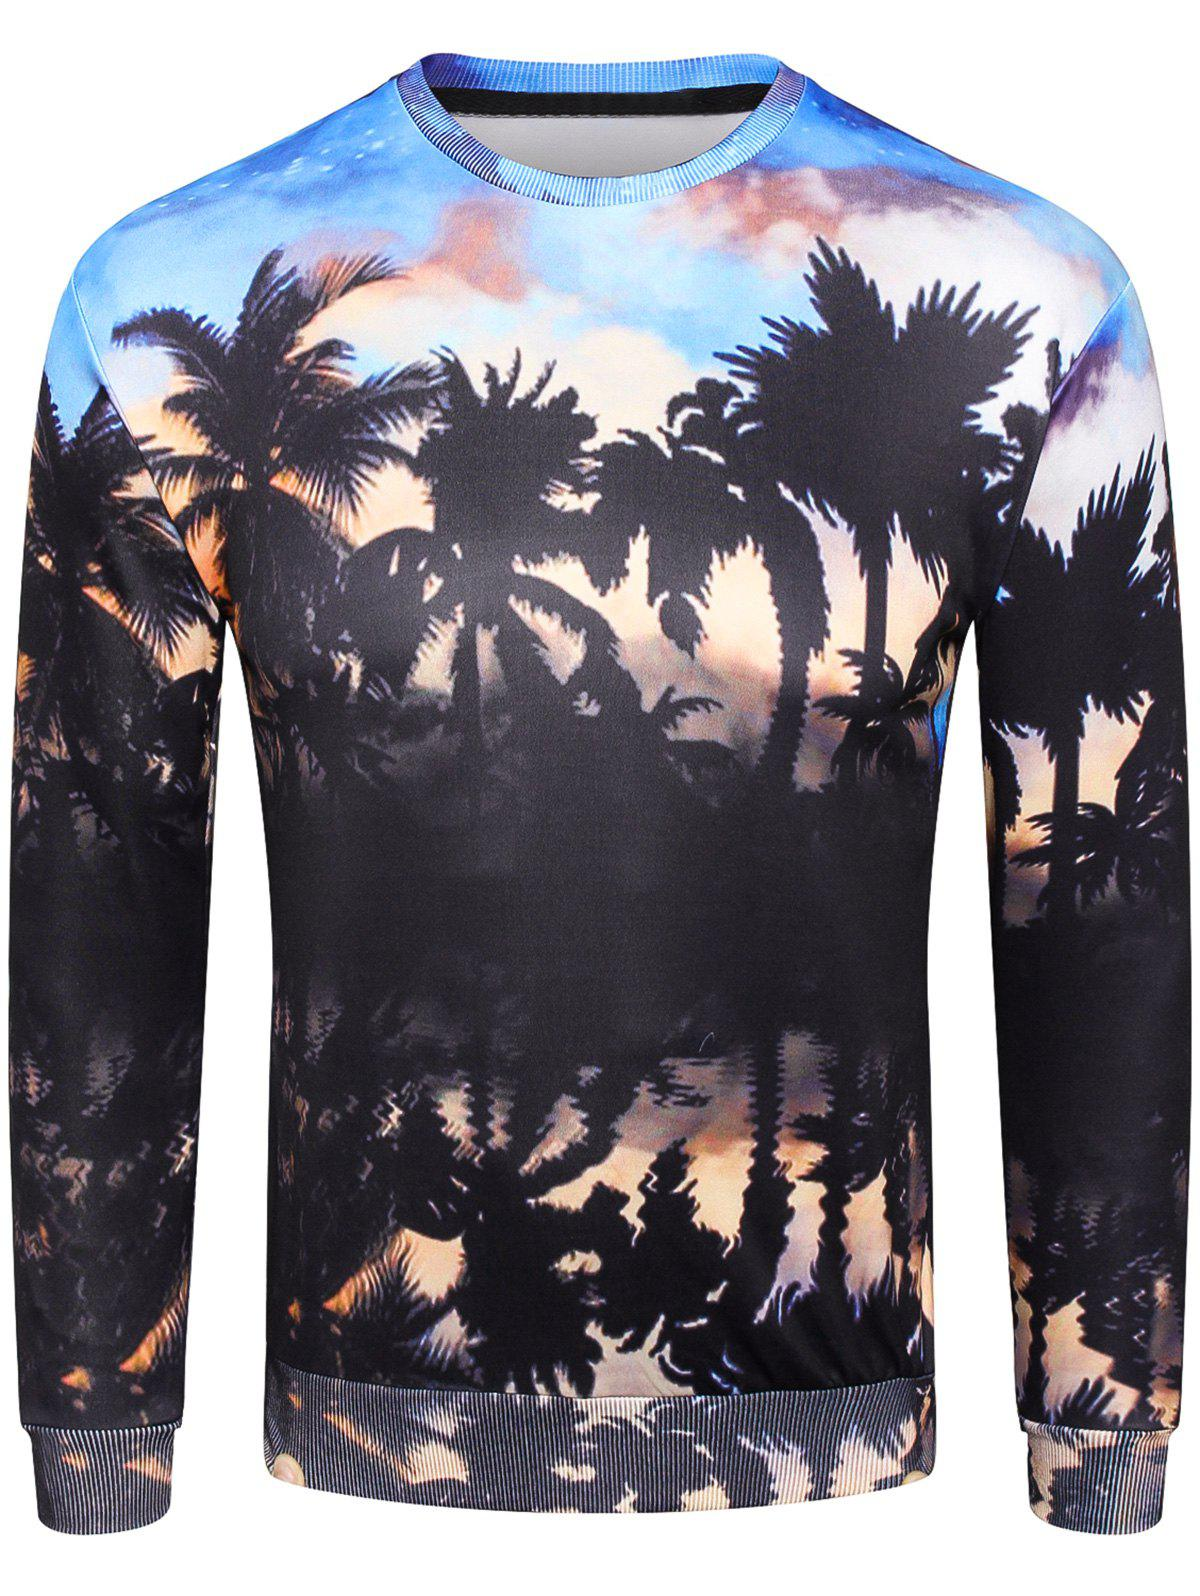 Crew Neck 3D Coconut Palm Print Pullover Sweatshirt hooded coconut palm print sweatshirt